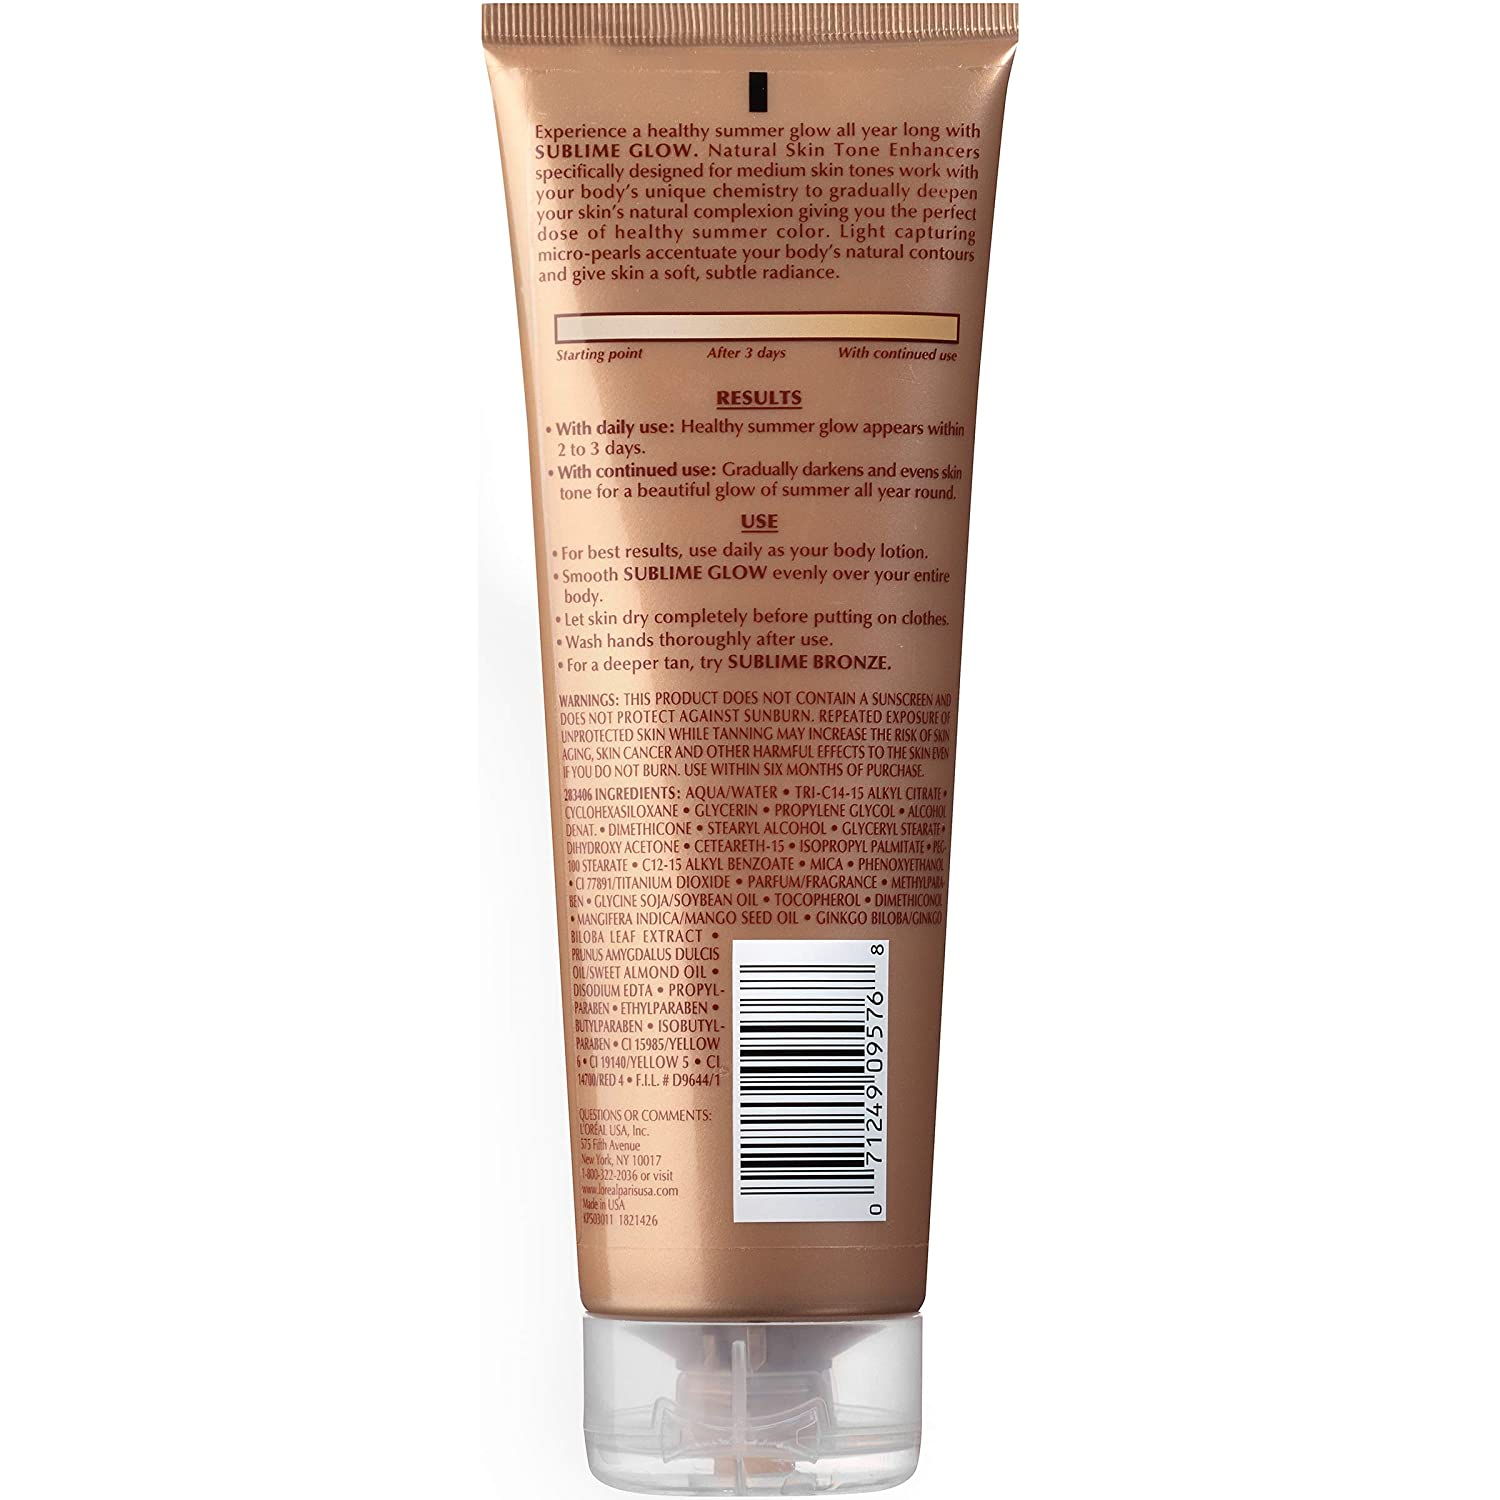 Sunless tanning lotion by L'Oreal Paris, Sublime Glow Daily Moisturizer and Natural Skin Tone Enhancer Medium Skin Tones 8 fl. oz.: Beauty